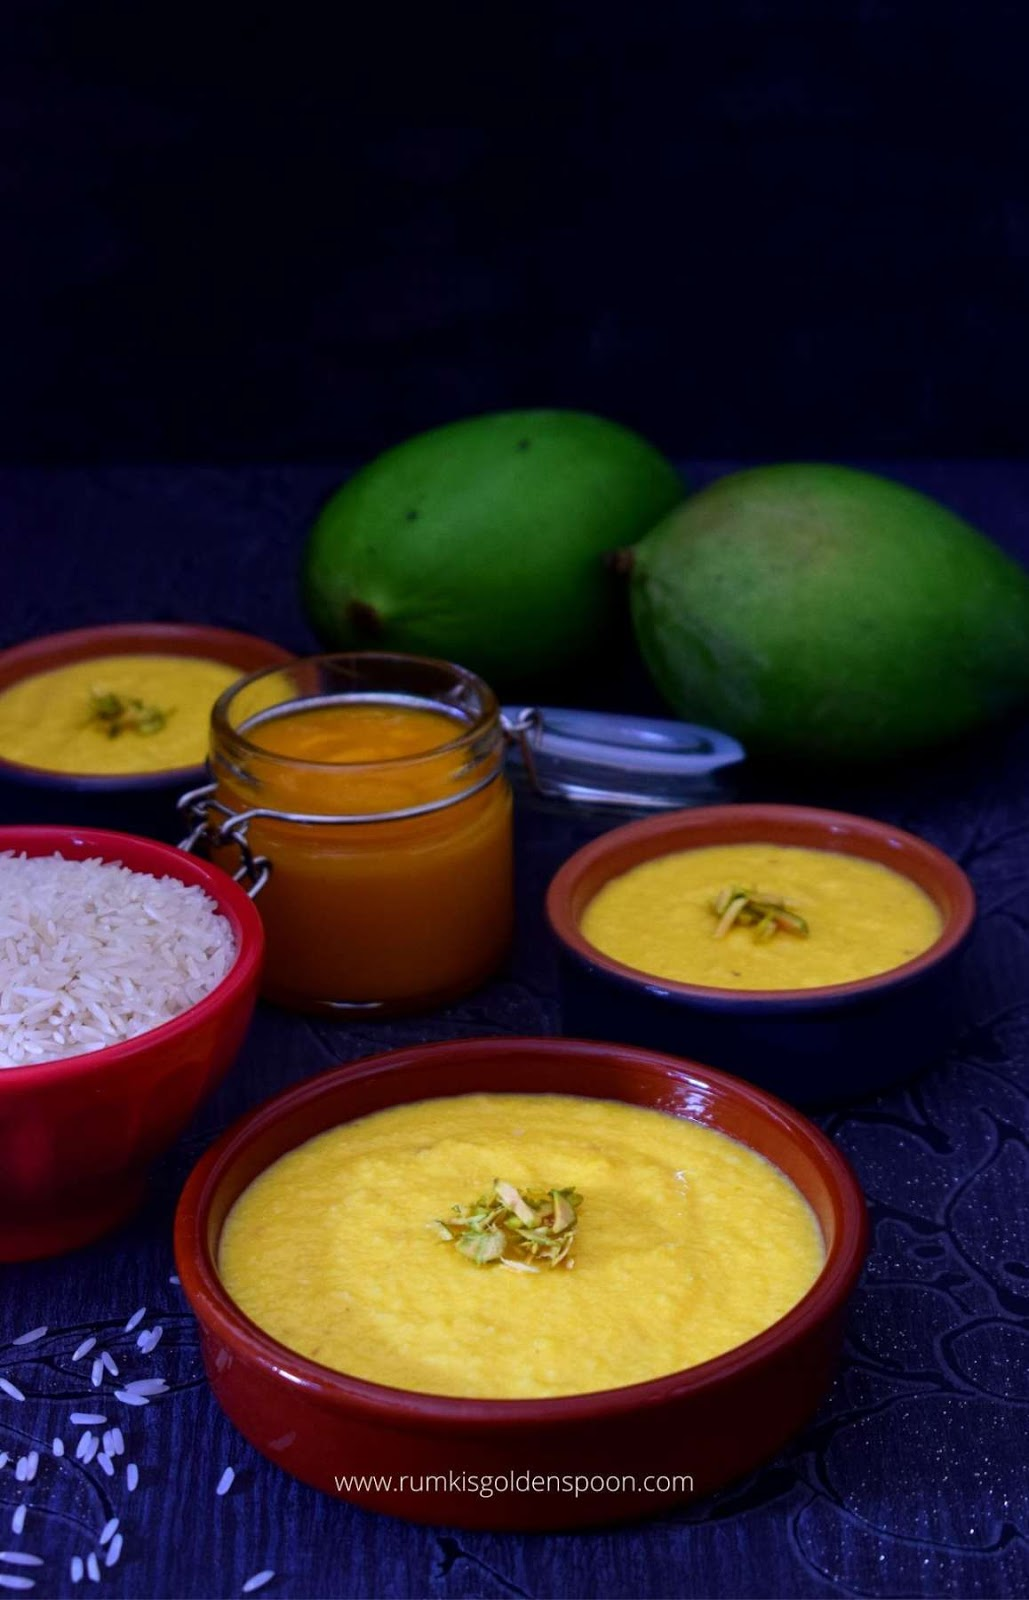 Mango firni, Mango phirni, mango firni recipe, mango phirni recipe, how to make mango phirni, Indian mango pudding recipe, aam phirni, aam ki phirni, firni recipe, recipe of phirni, recipe for phirni, phirni, phirni recipe, firni, firni recipe, recipe of firni, phirni sweet recipe, rice phirni recipe, easy phirni recipe, phirni dessert recipe, how to make phirni, rice kheer recipe, kheer recipe, mango dessert, mango dessert recipes, mango dessert recipe, mango recipes dessert, Indian mango dessert recipes, Indian dessert recipes with mango, Indian dessert with mango, indian sweet recipes, Rumki's Golden Spoon